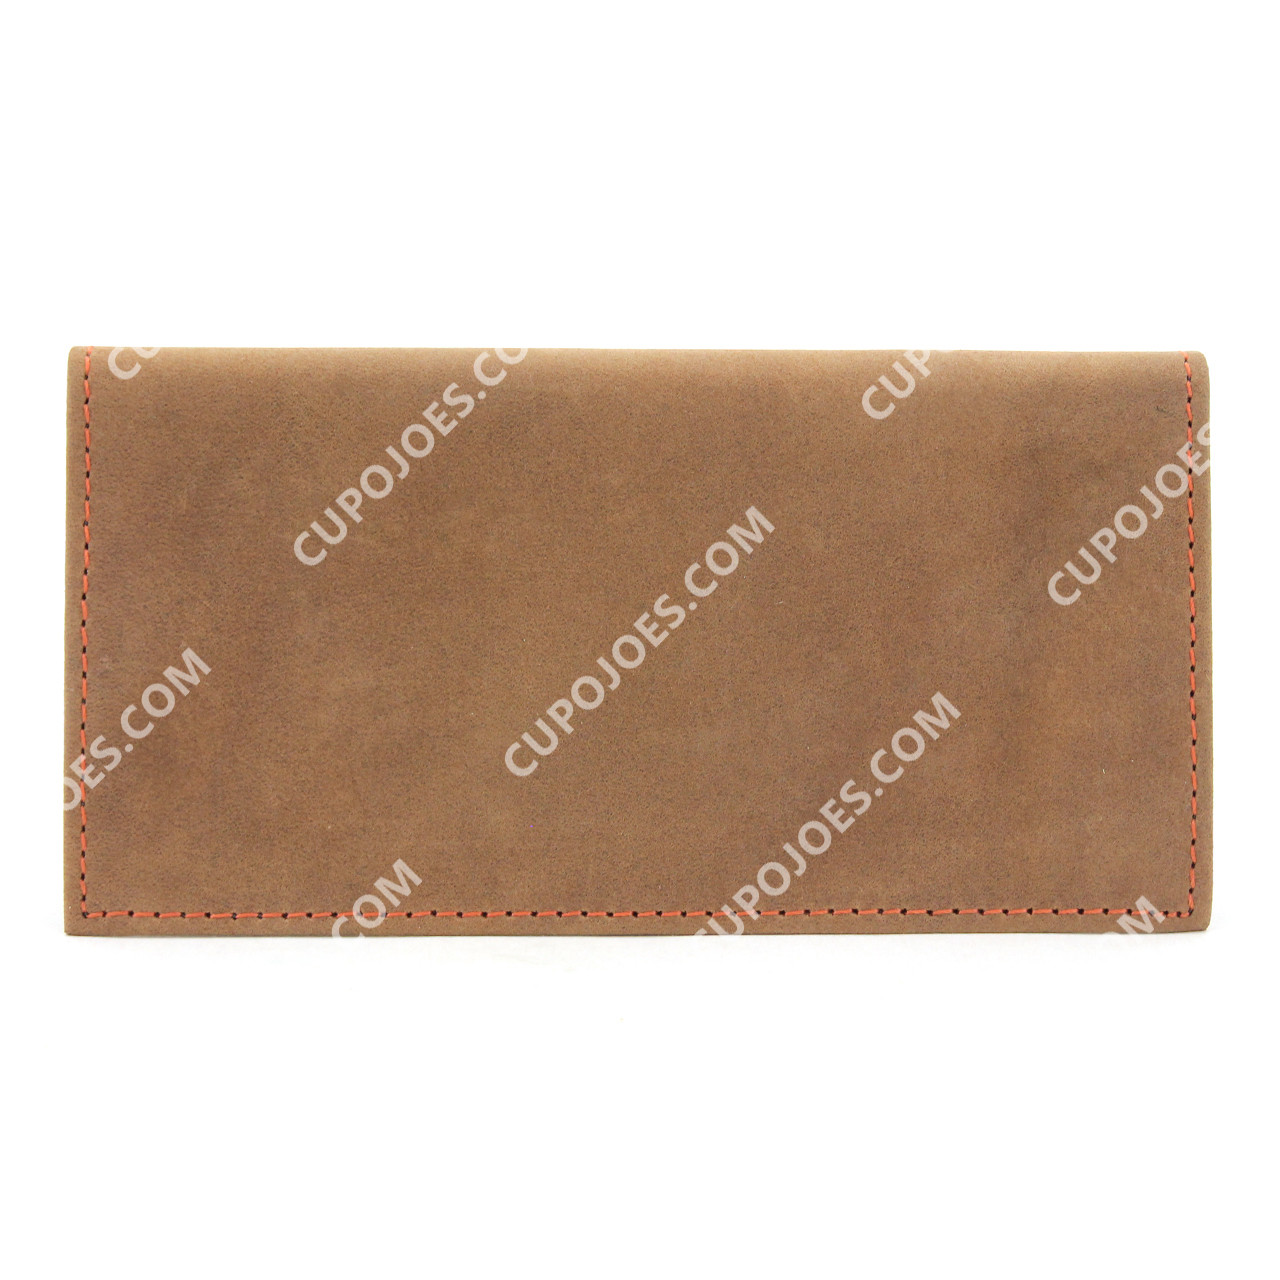 Rollup Erik Stokkebye 4th Generation Hunter Brown Rollup Pouch